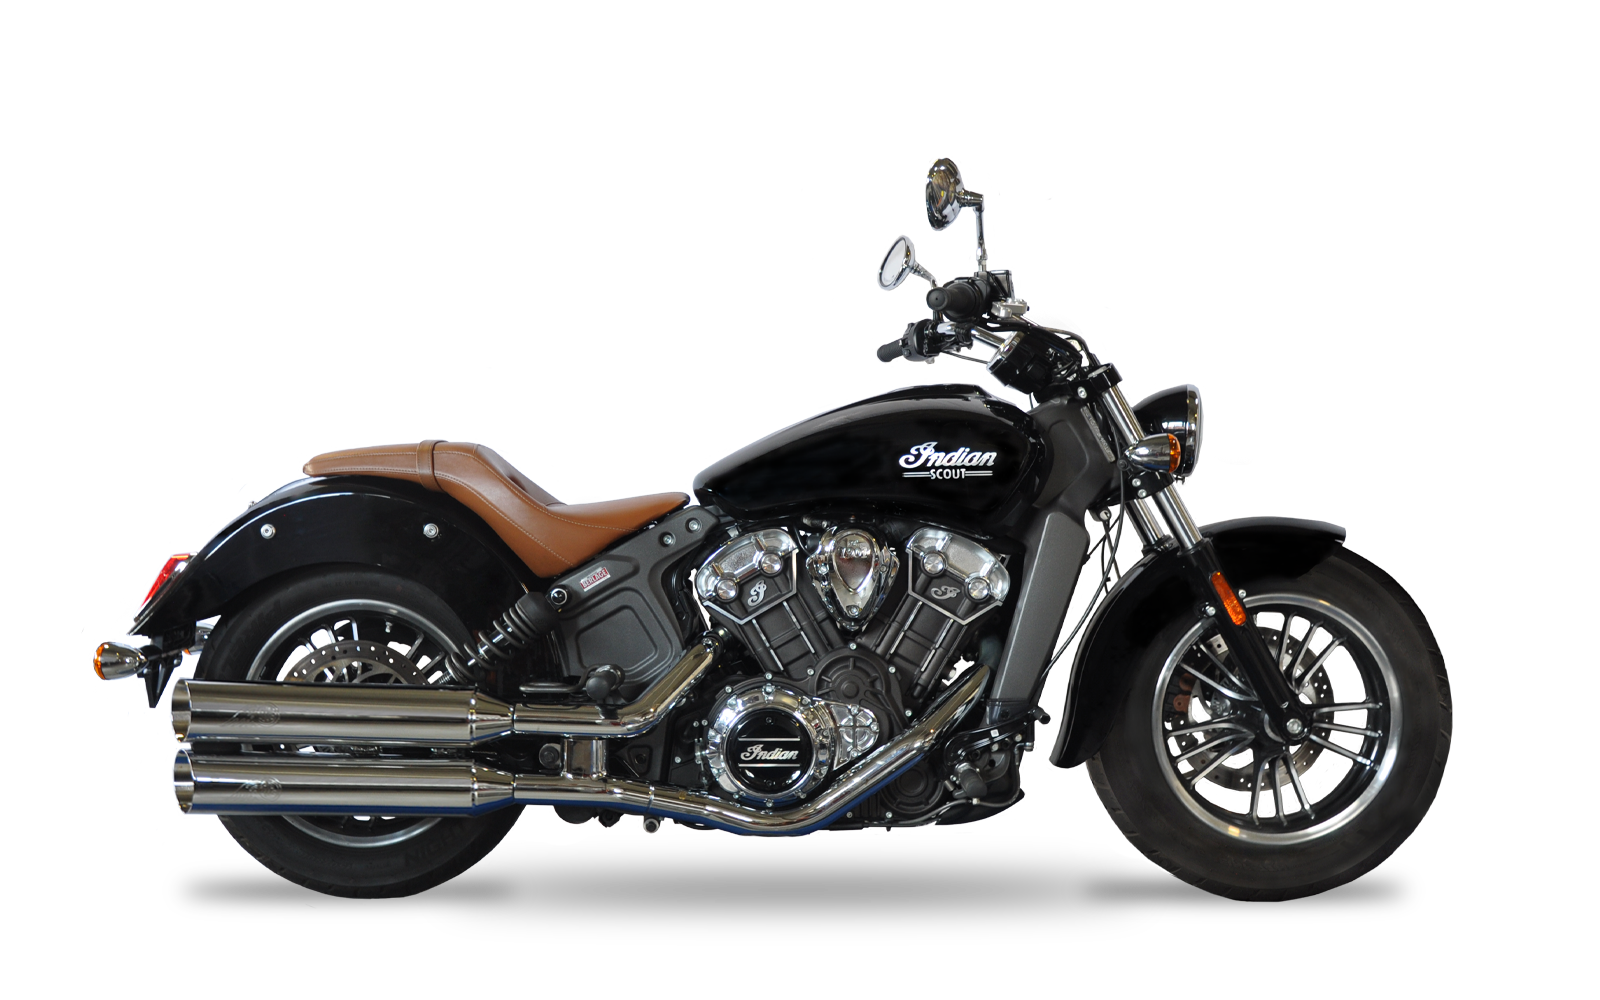 Scout - Indian Scout Bobber - 1133 - 2021 - Slipons